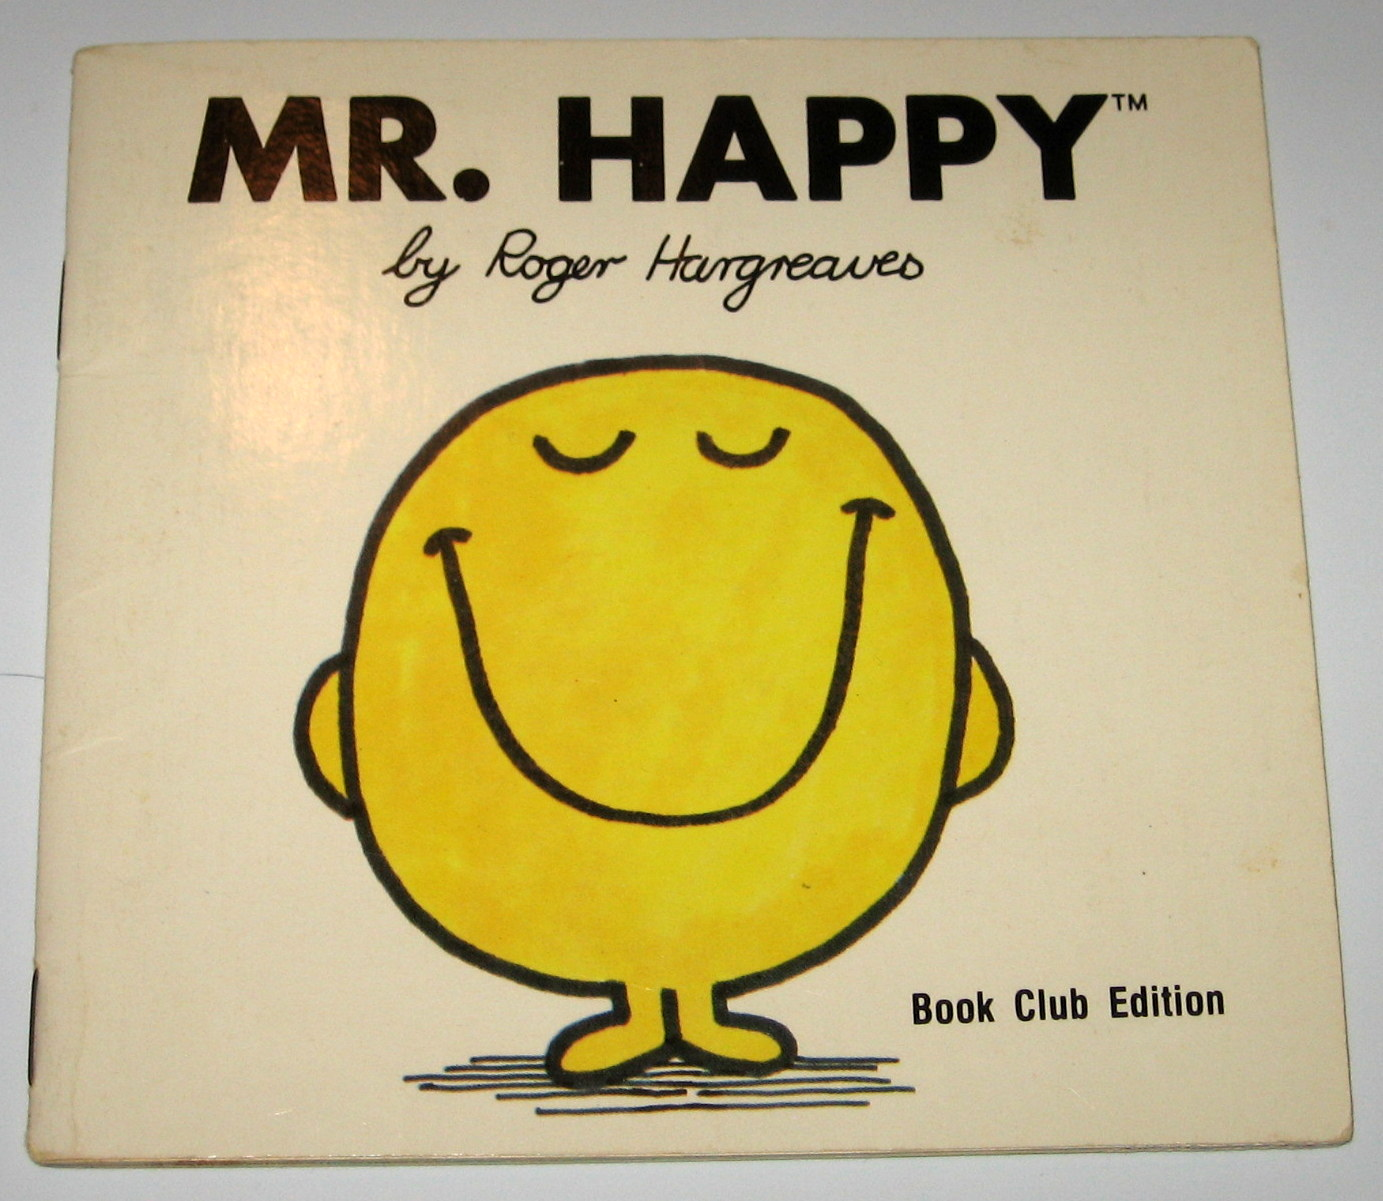 Mr. Men - Wikipedia